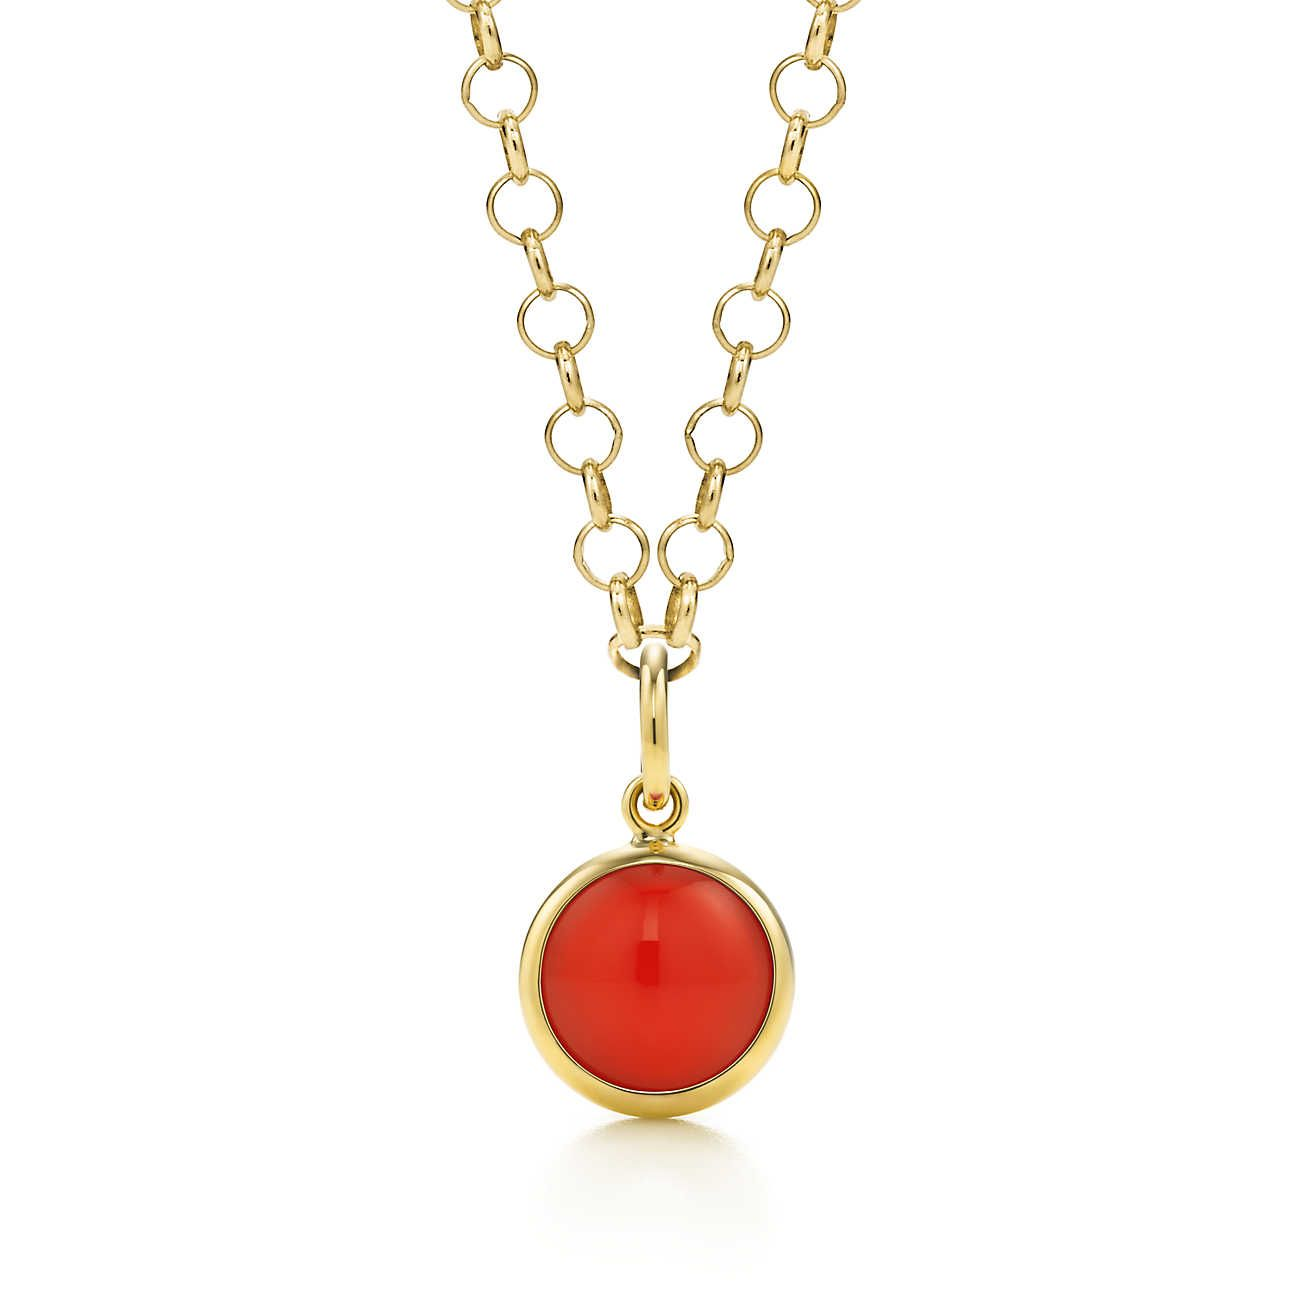 1b5f75b584b9d Paloma Picasso®:Carnelian Dot Charm and Chain | My Style | All that ...